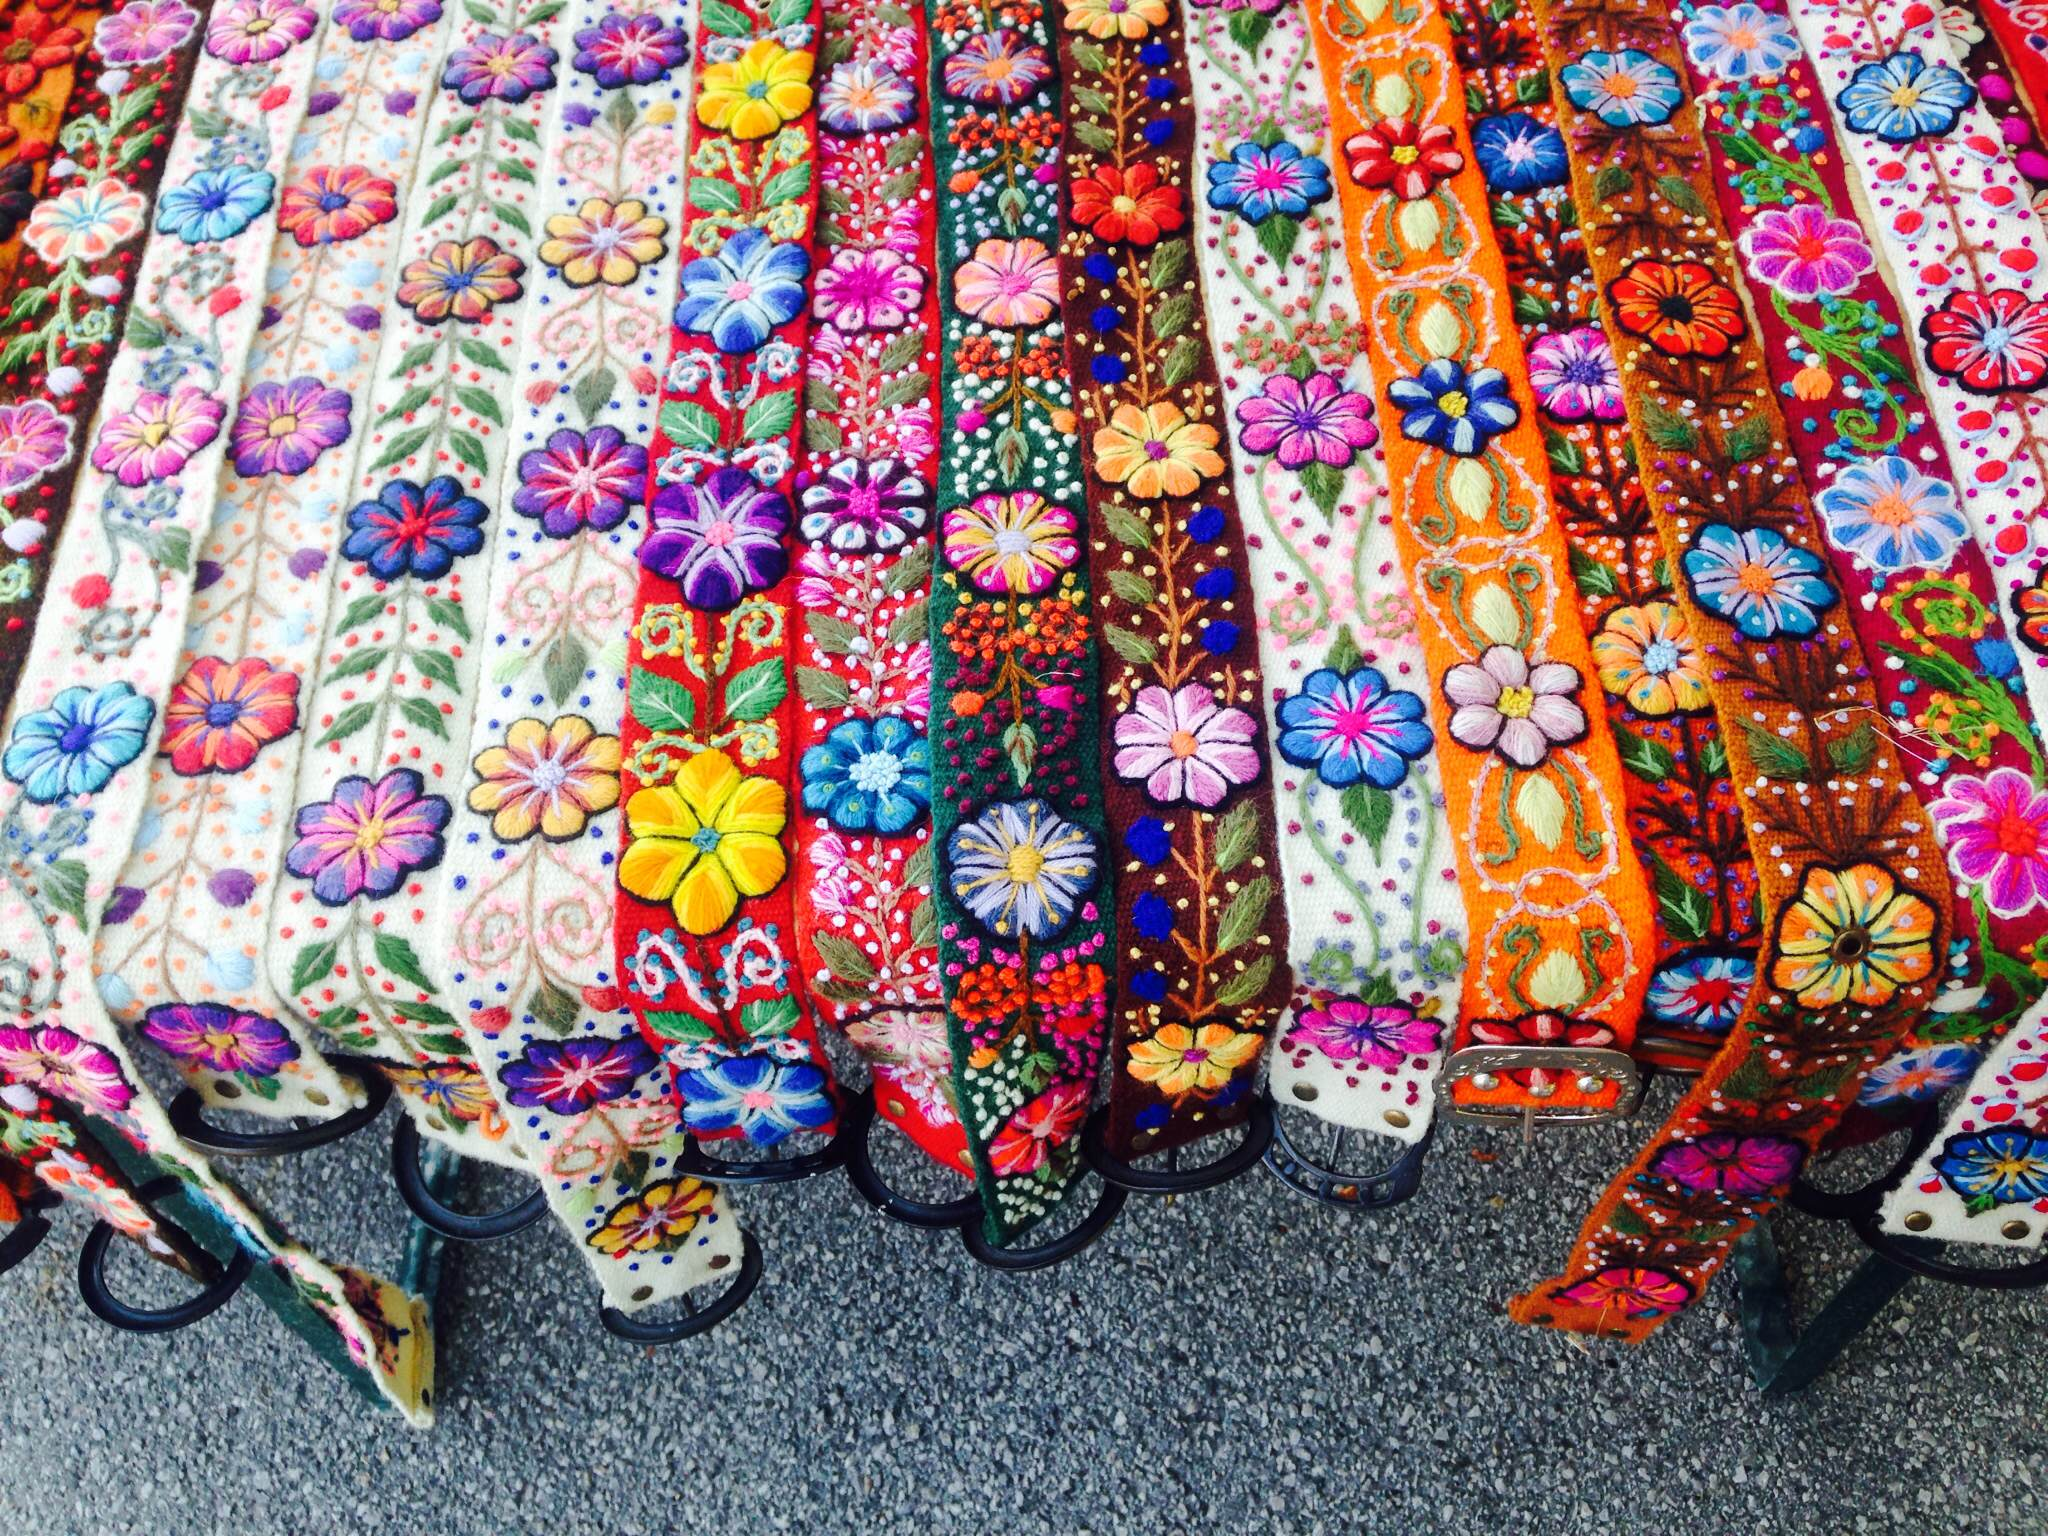 Craft belts at a Salzburg street market